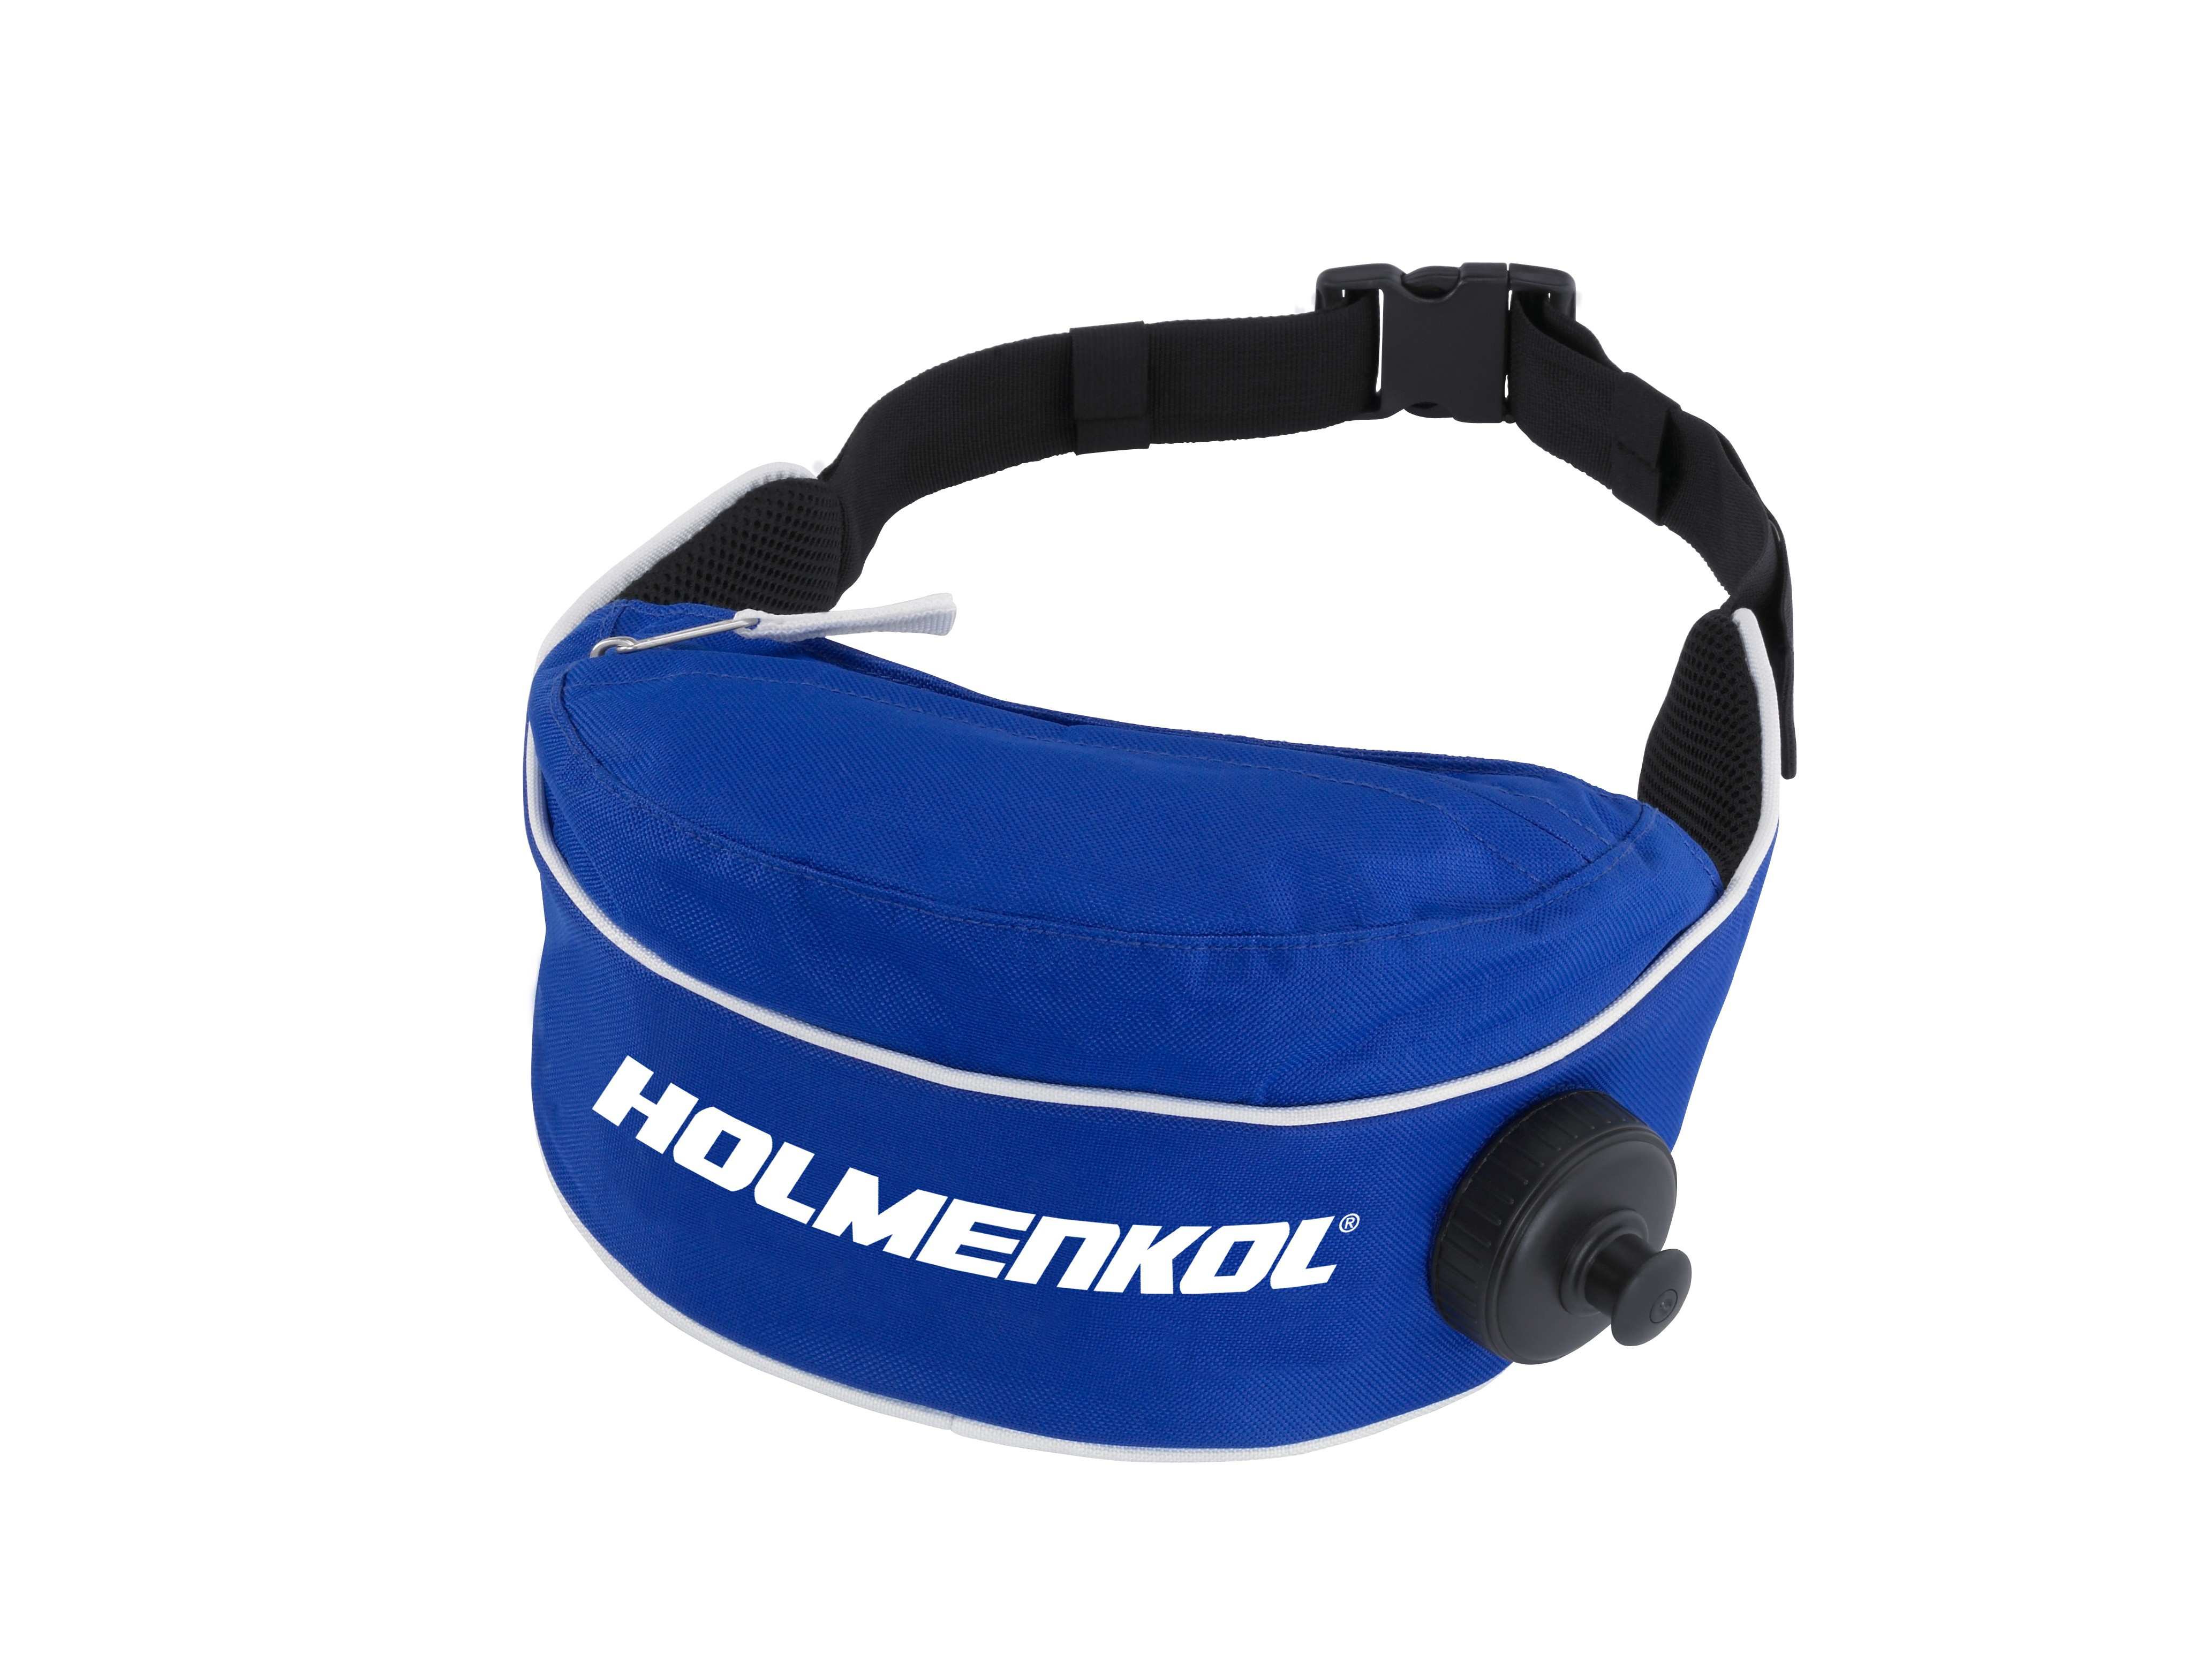 Holmenkol Racing bottle bag, 1000ml